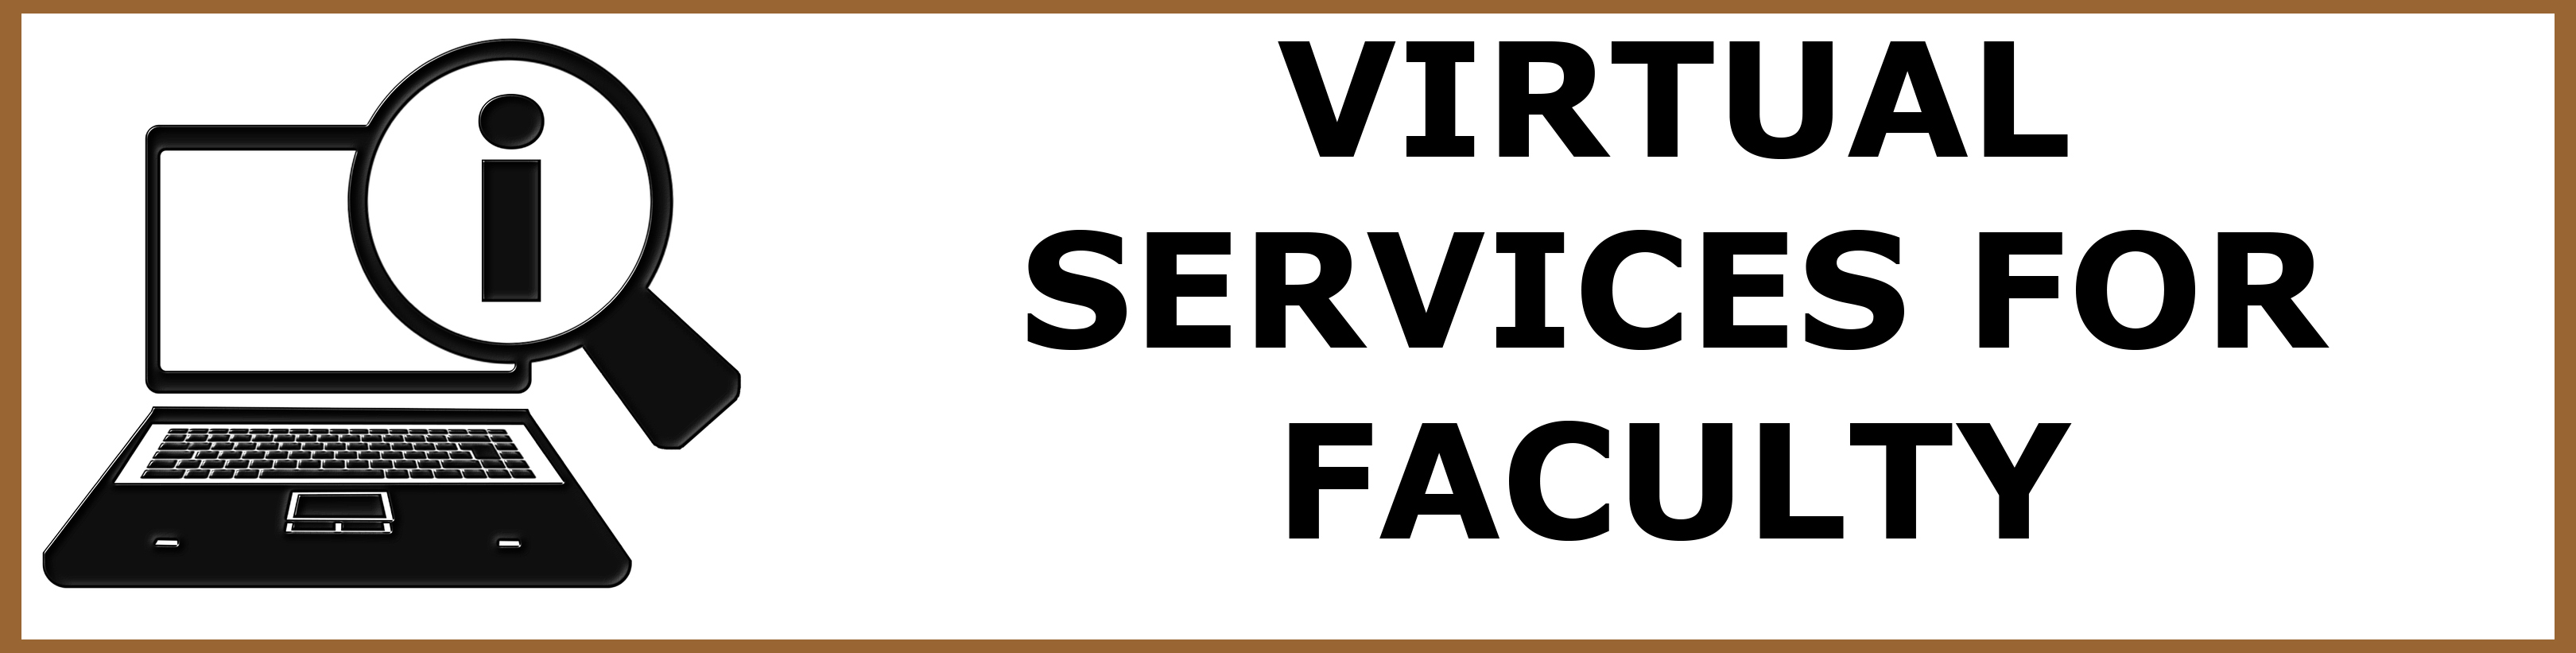 button for virtual services for faculty